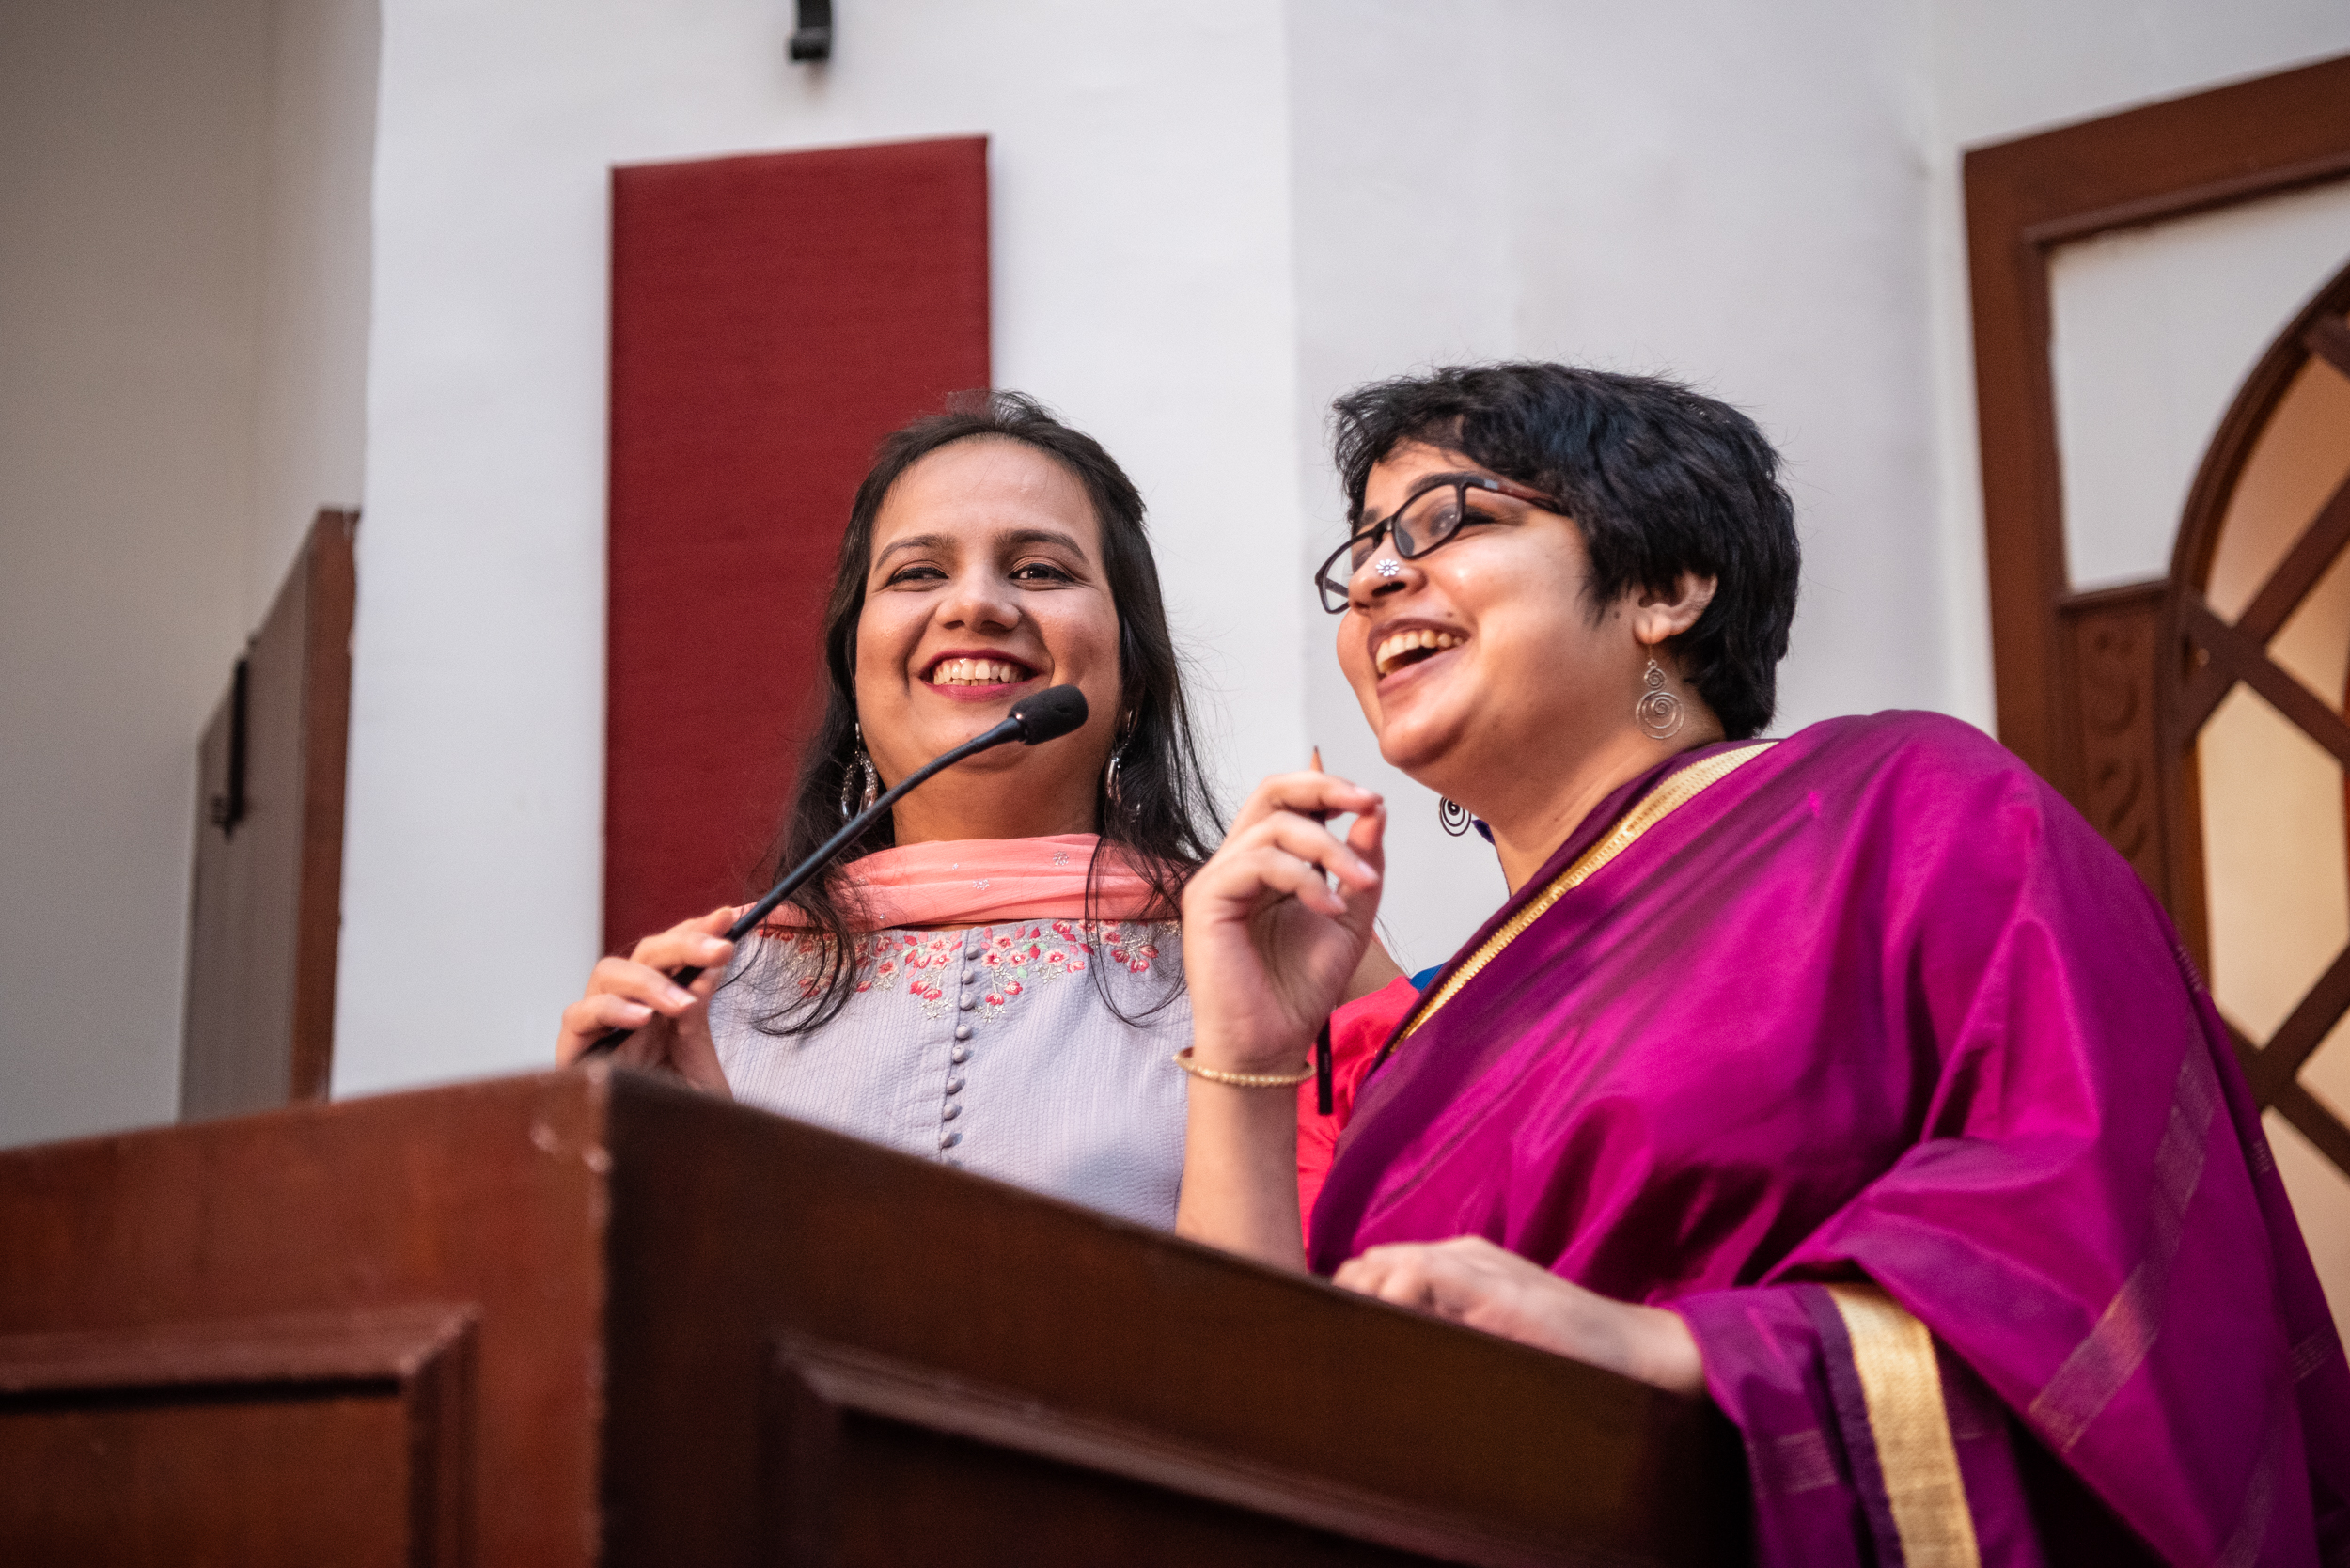 nidhi goyal and srinidhi raghavan speaking on the mic at the podium at lead grow change in delhi.